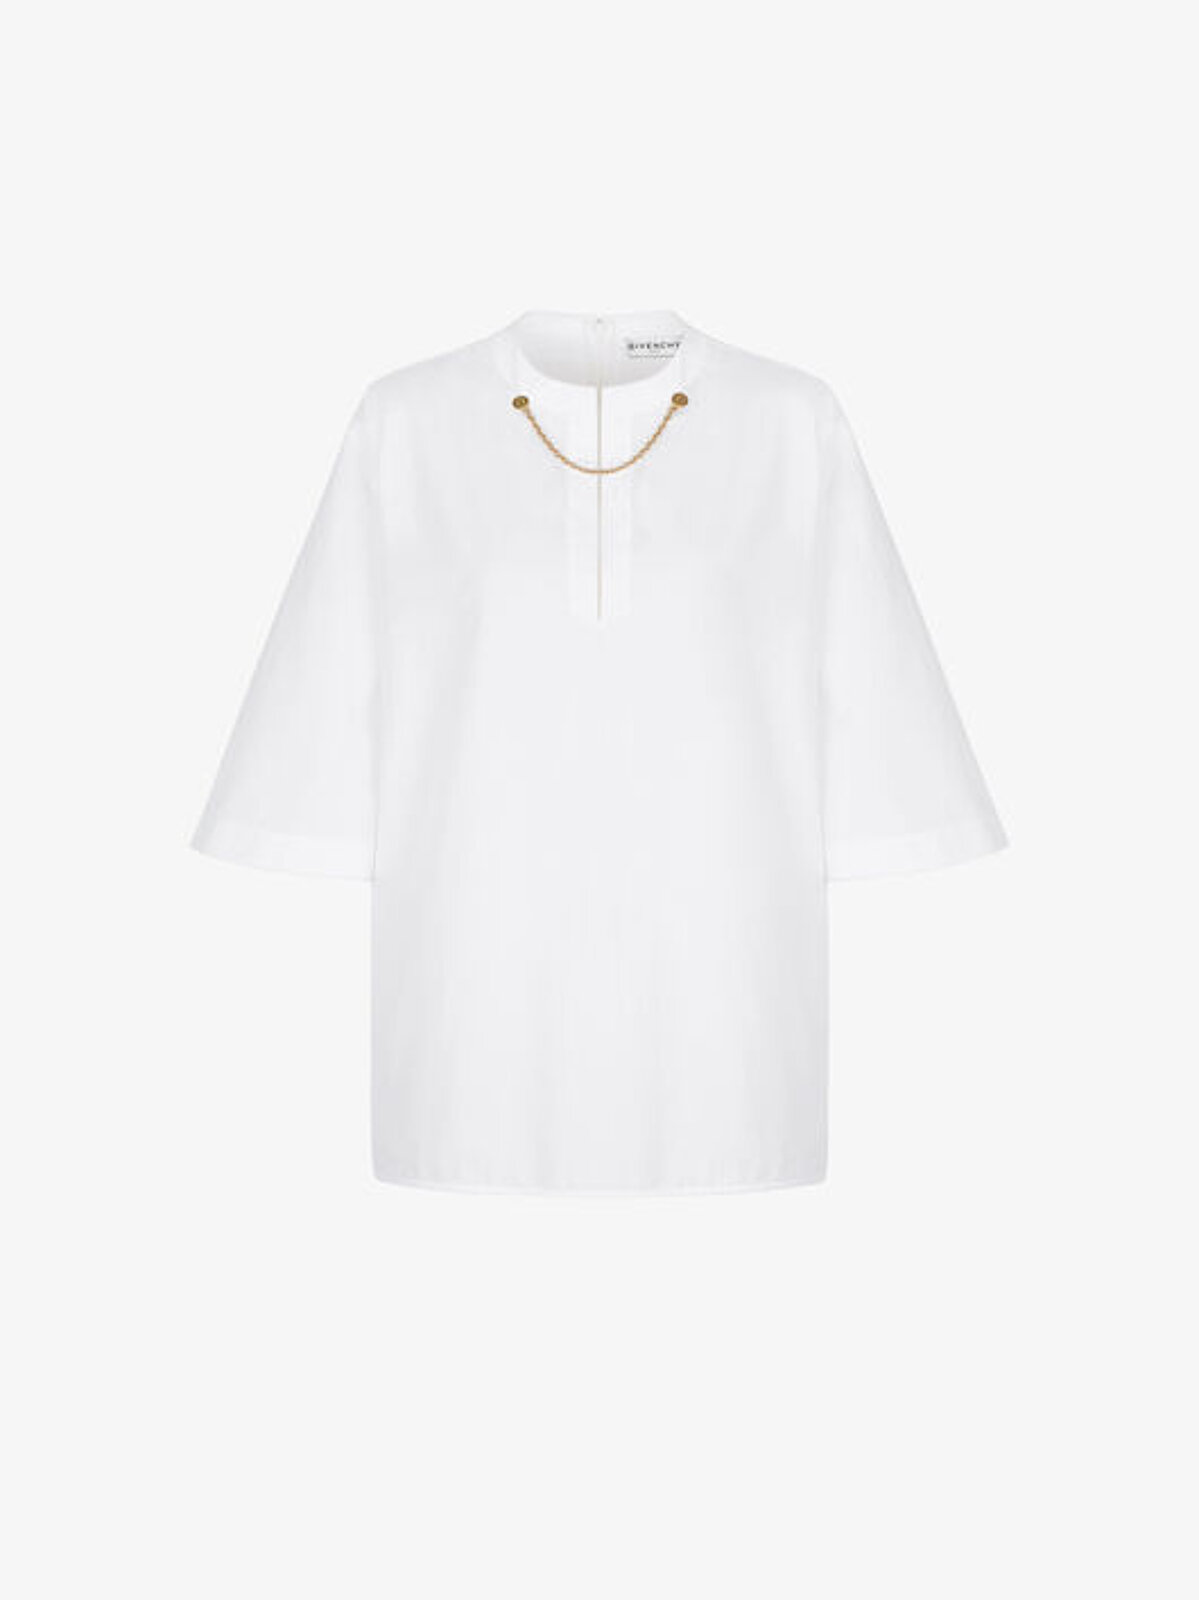 Cotton Blouse With Chain On The Neck - Givenchy